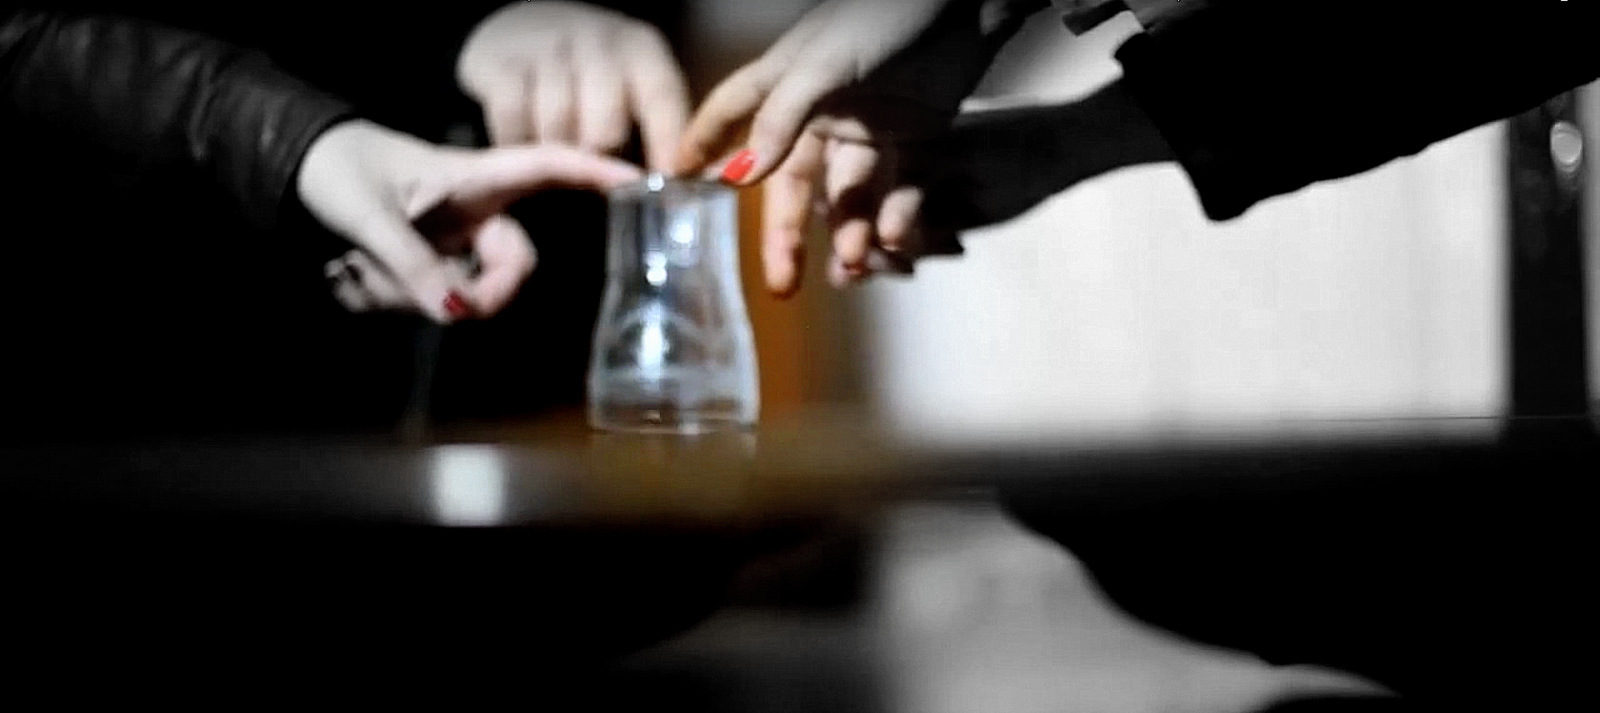 Hands on glass conducting Seance